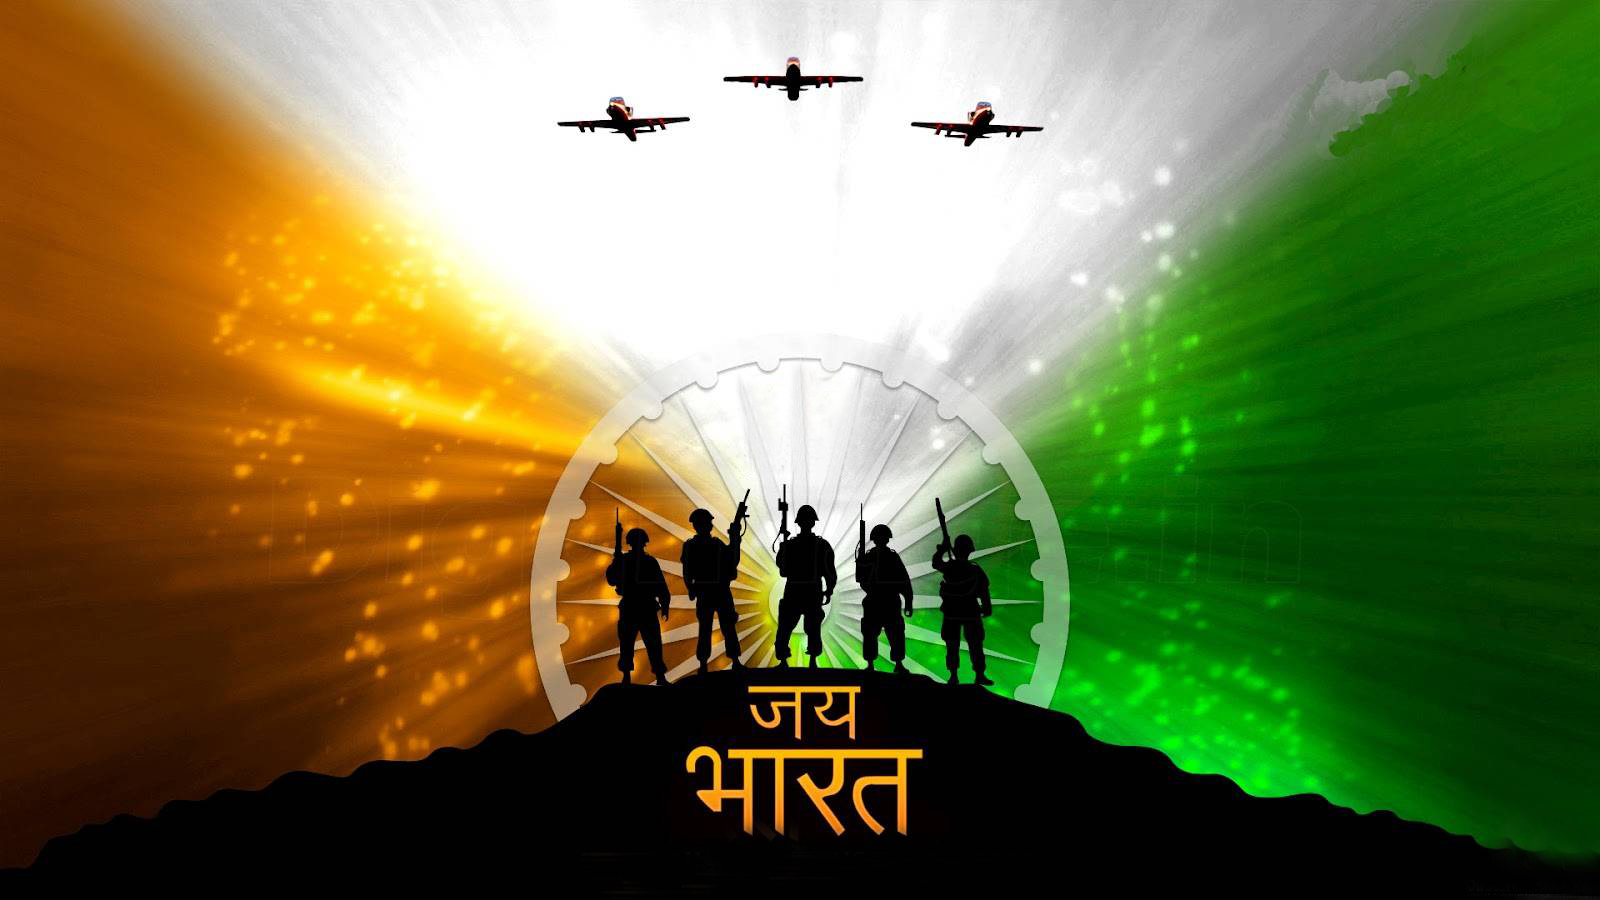 Day Happy Hd Indpeneence: {Free} Independence Day 2015 Wishes-wallpapers Download